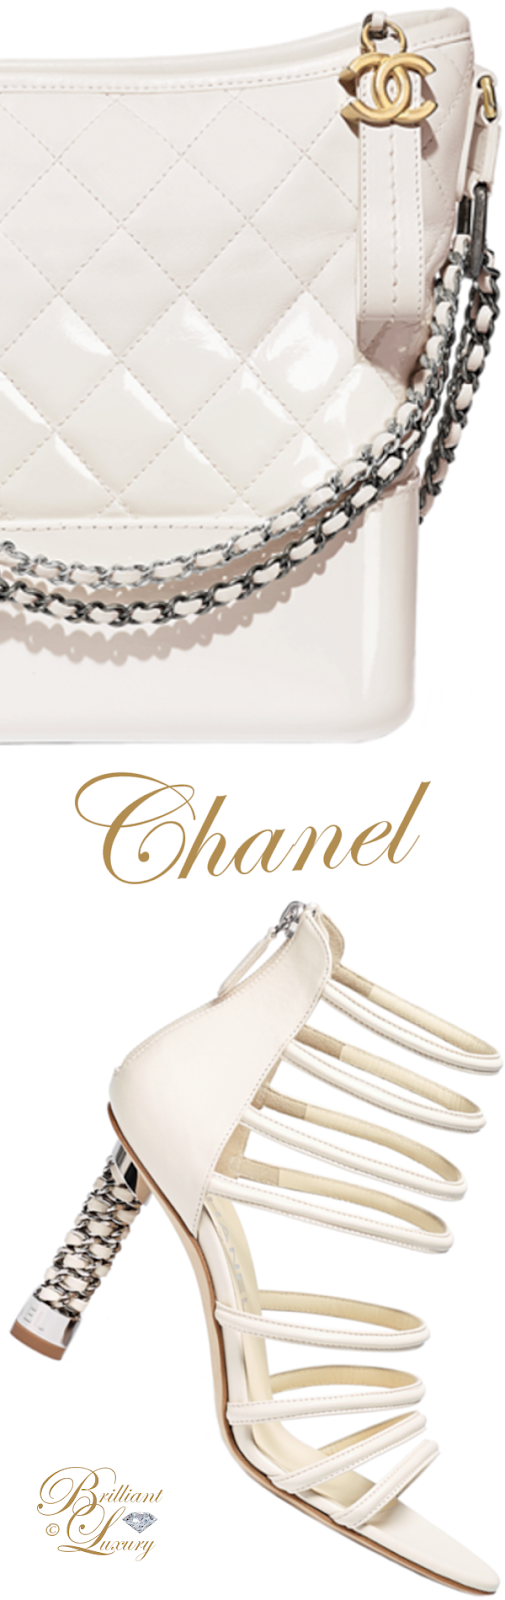 Brilliant Luxury ♦ Chanel white Gabrielle hobo bag and Chanel white sandals with crystal heel